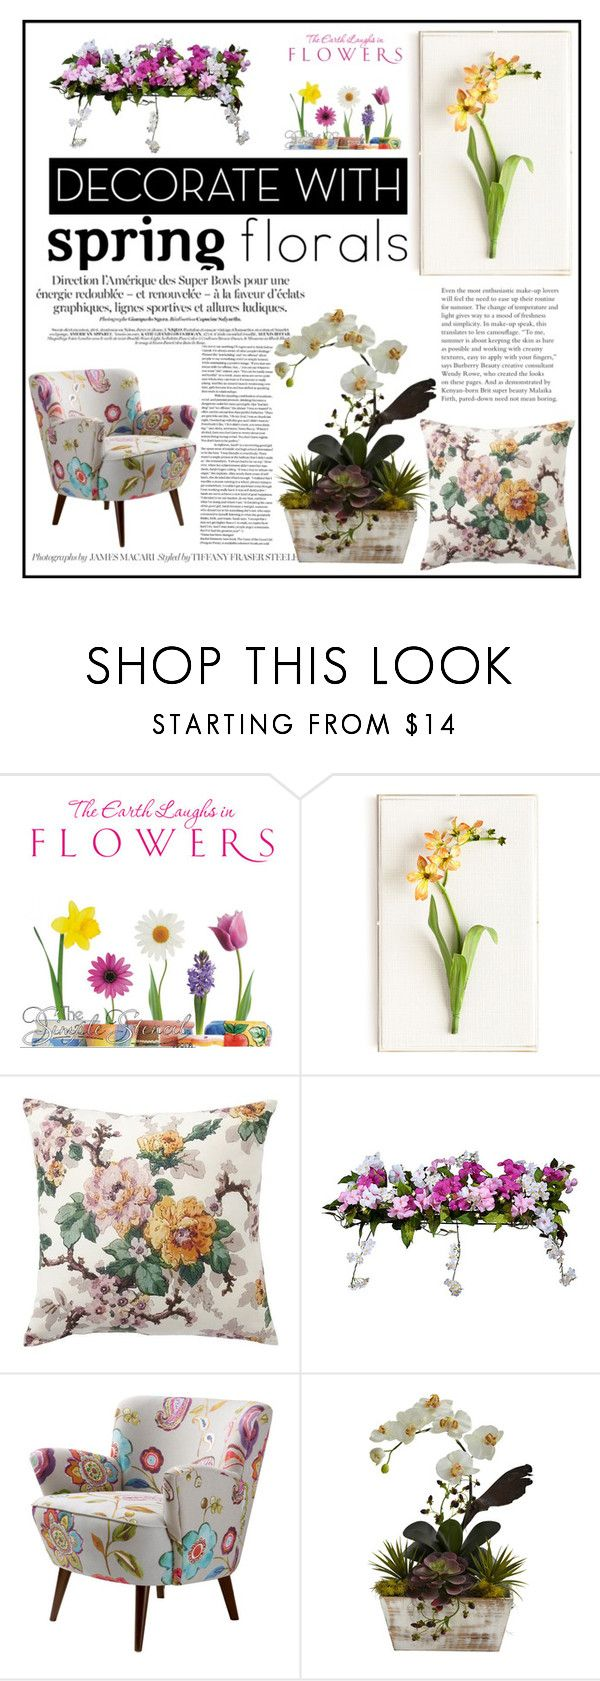 """Spring Florals #2"" by elisabetta-negro ❤ liked on Polyvore featuring interior, interiors, interior design, home, home decor, interior decorating, Tommy Mitchell, Pottery Barn, Improvements and Nearly Natural"